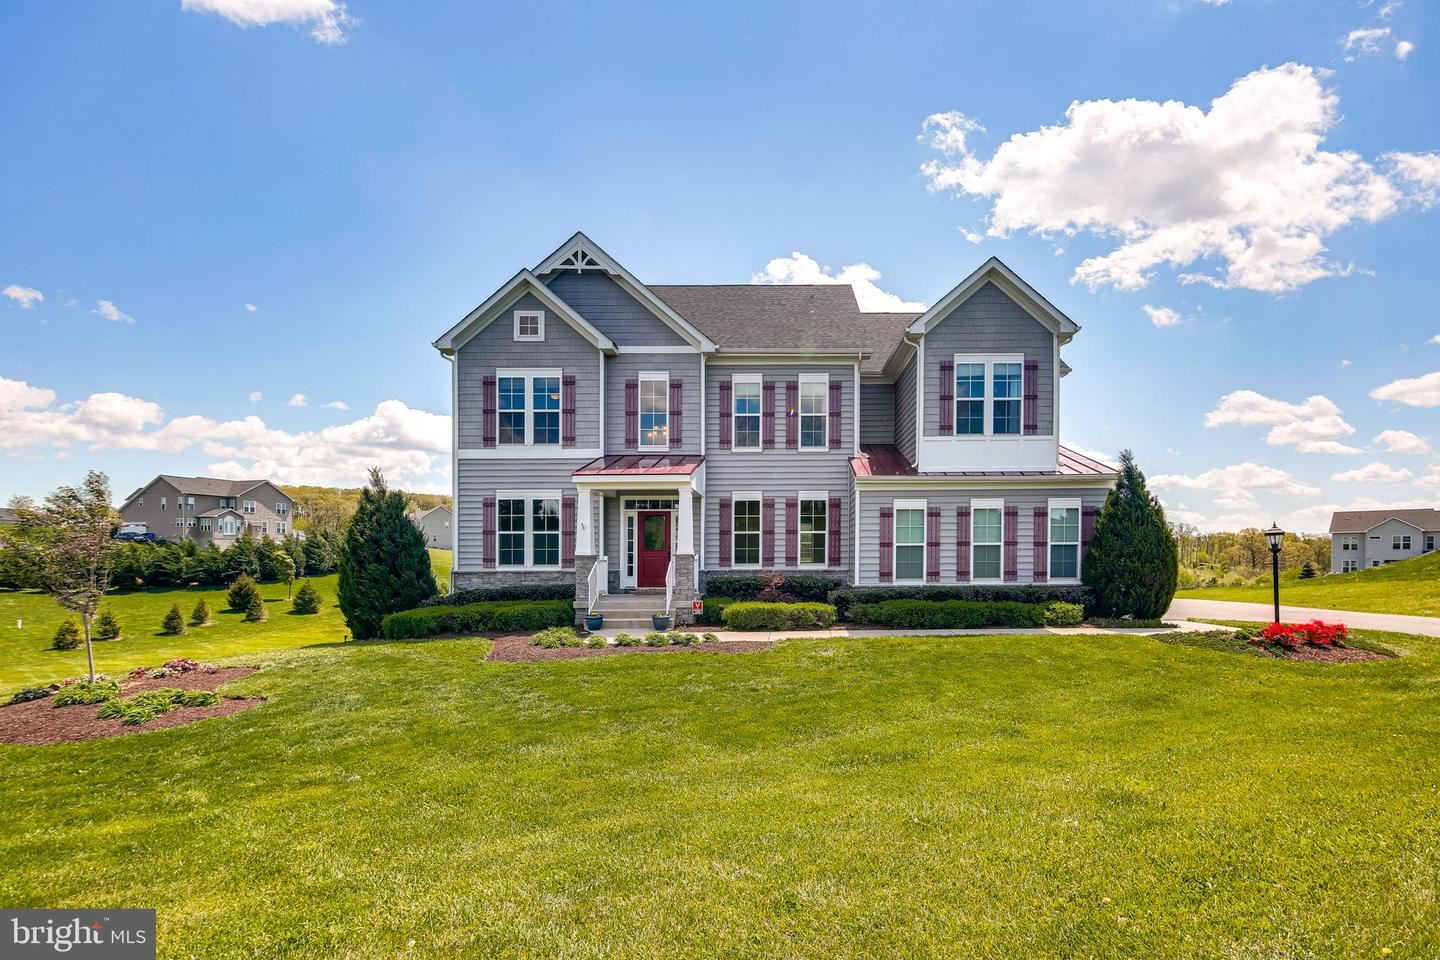 1265 CAMBRIA RD, Westminster, MD 21157 - MLS#: MDCR204246